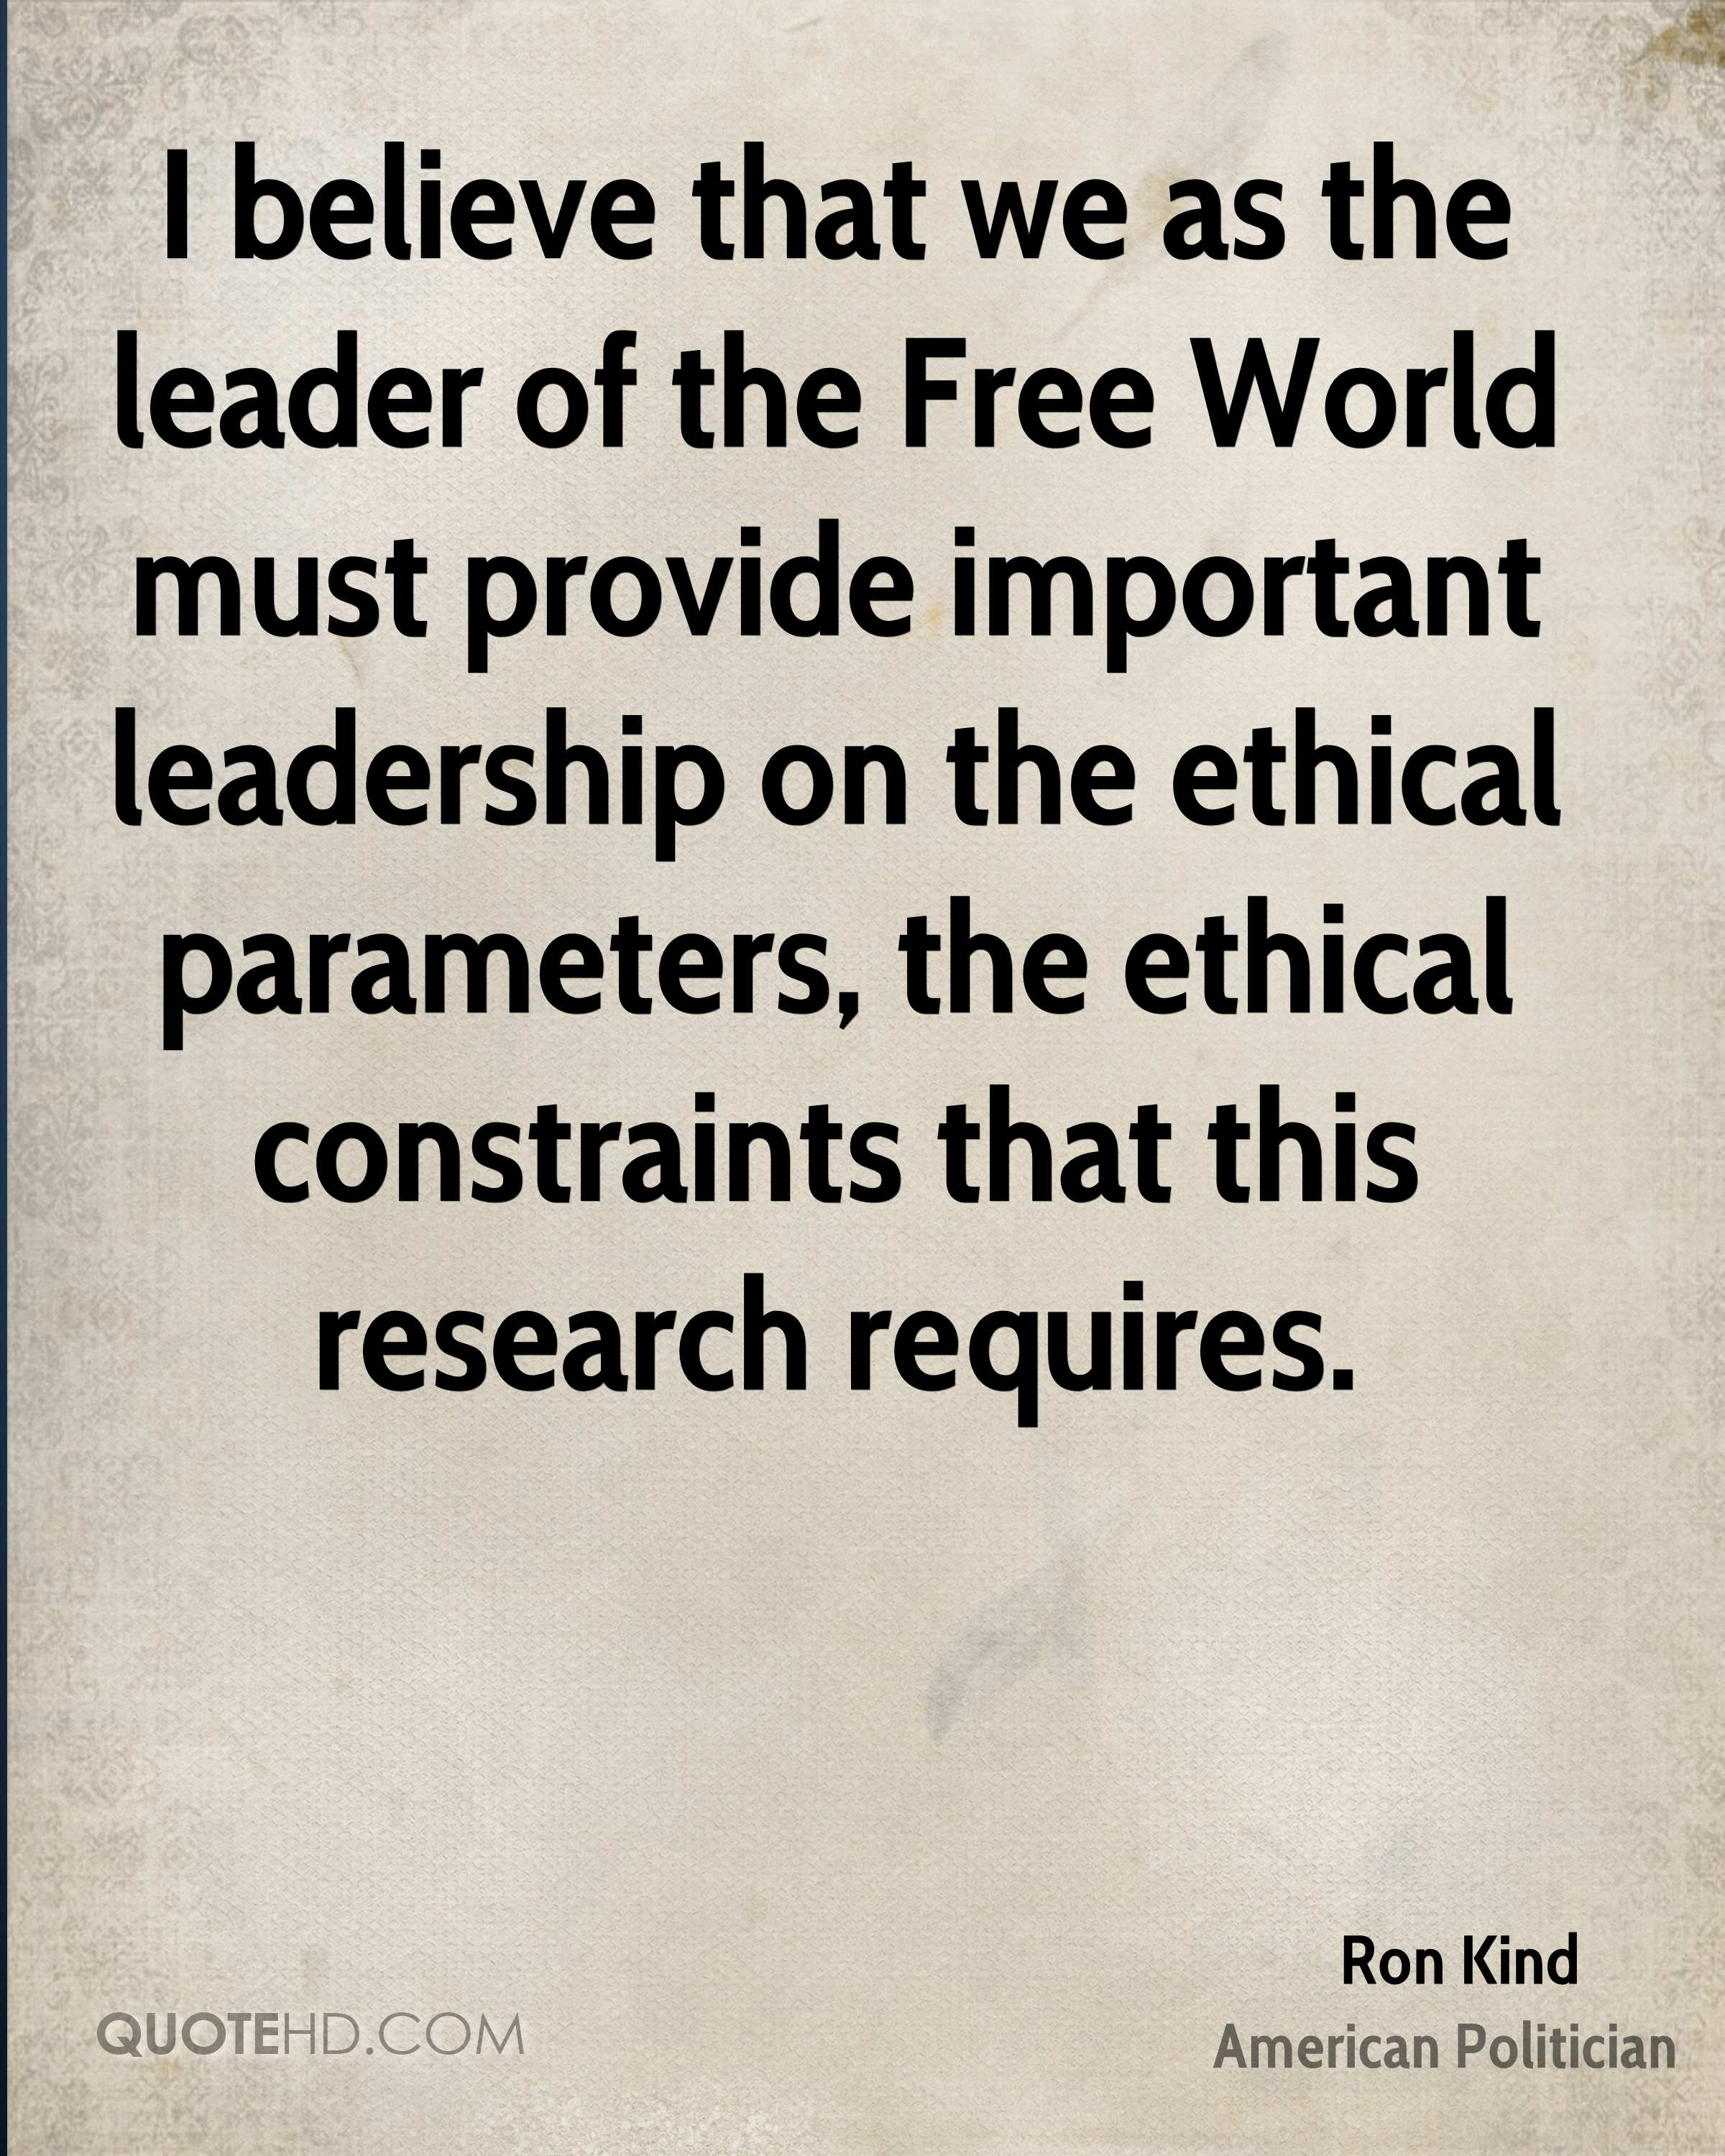 I believe that we as the leader of the Free World must provide important leadership on the ethical parameters, the ethical constraints that this research requires.